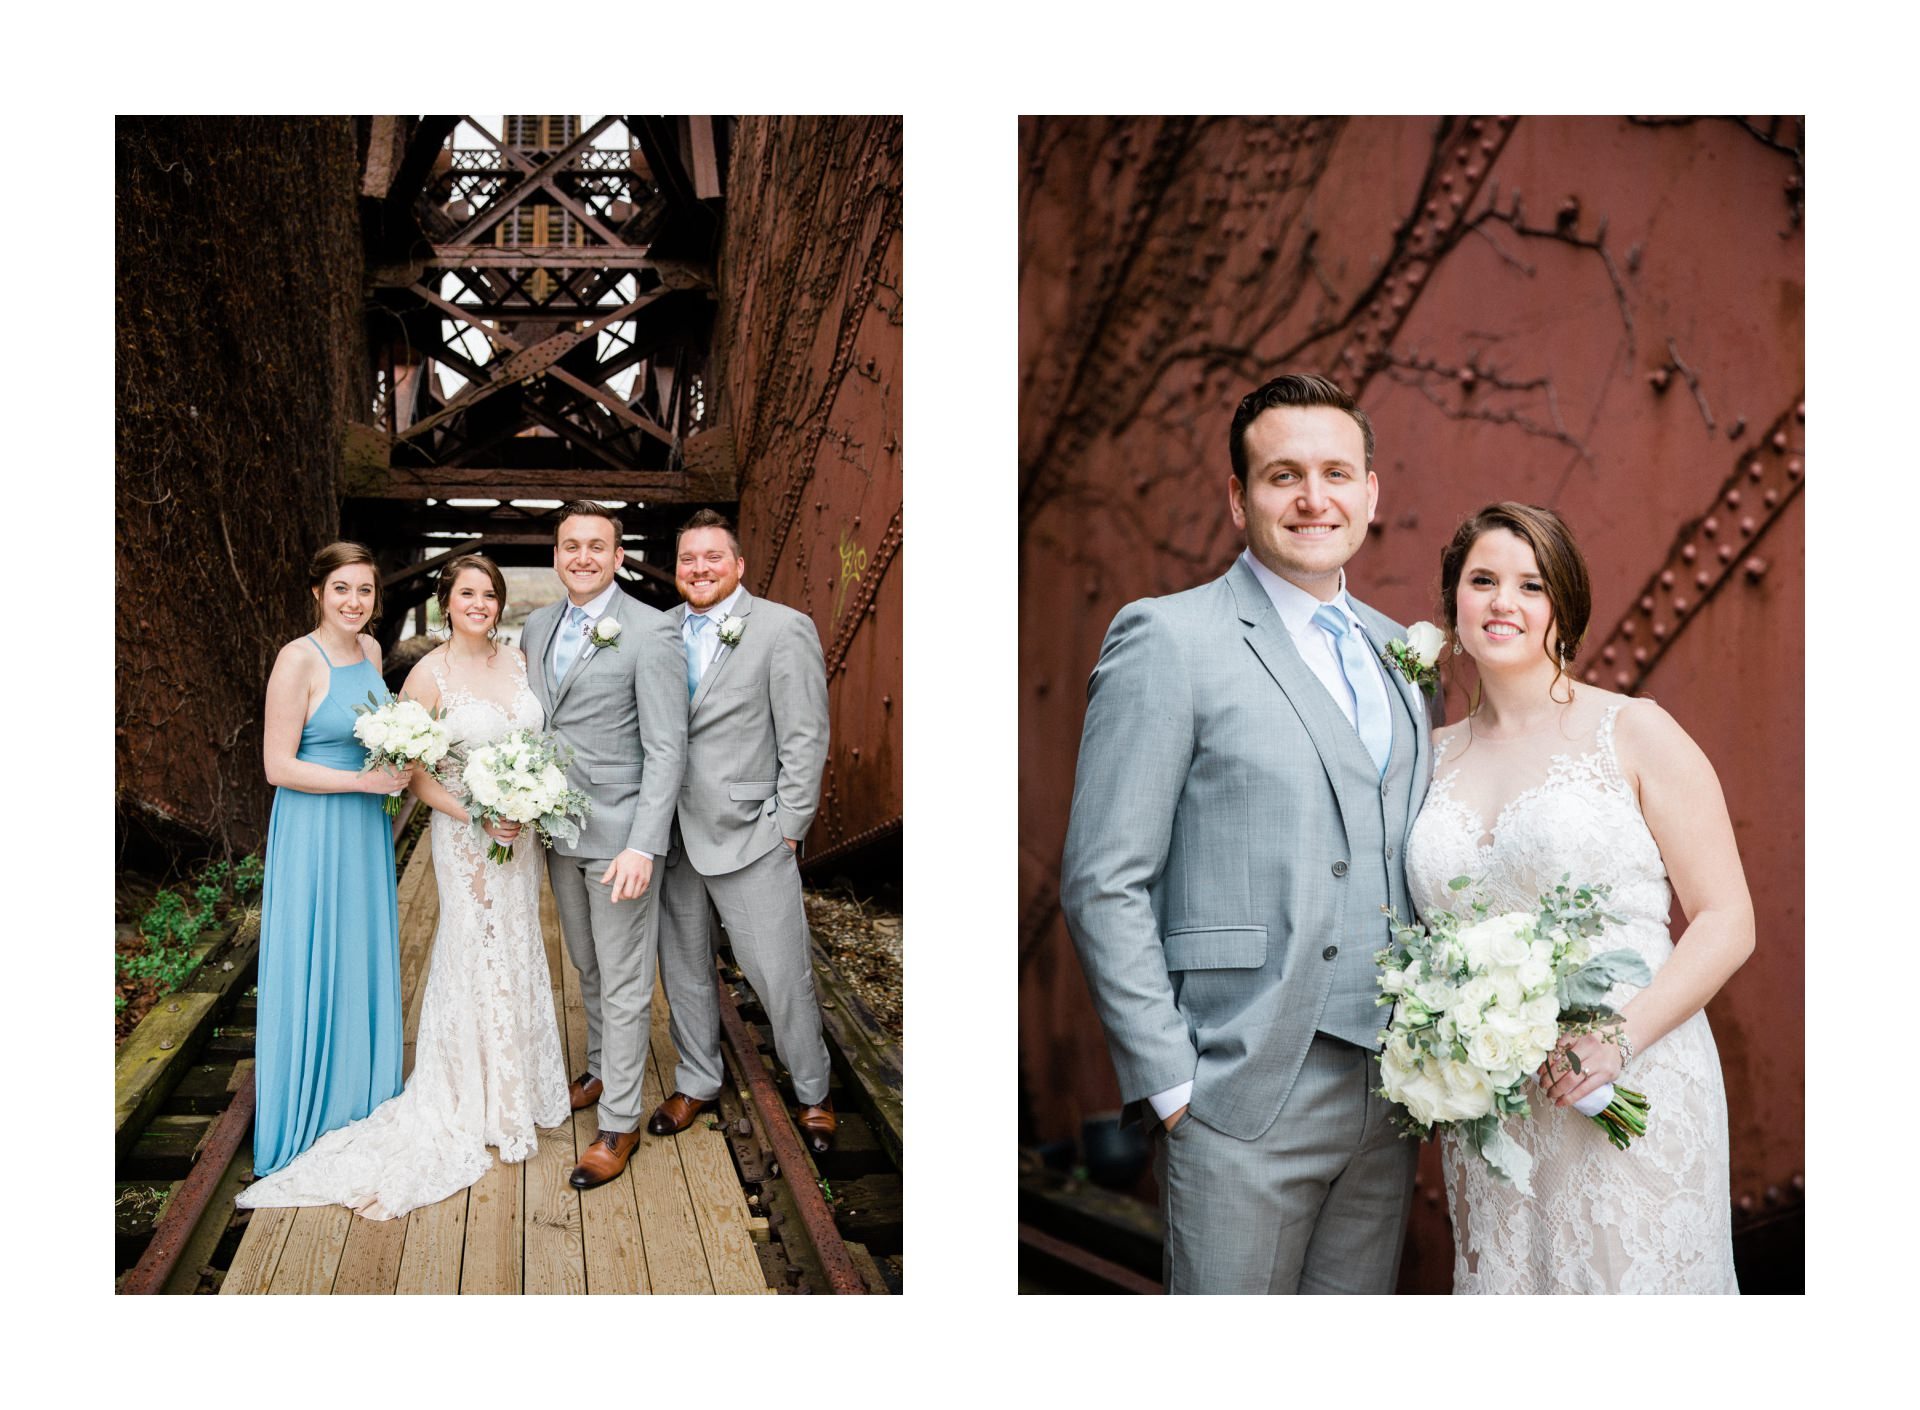 Windows on the River Cleveland Wedding Photographer 1 45.jpg